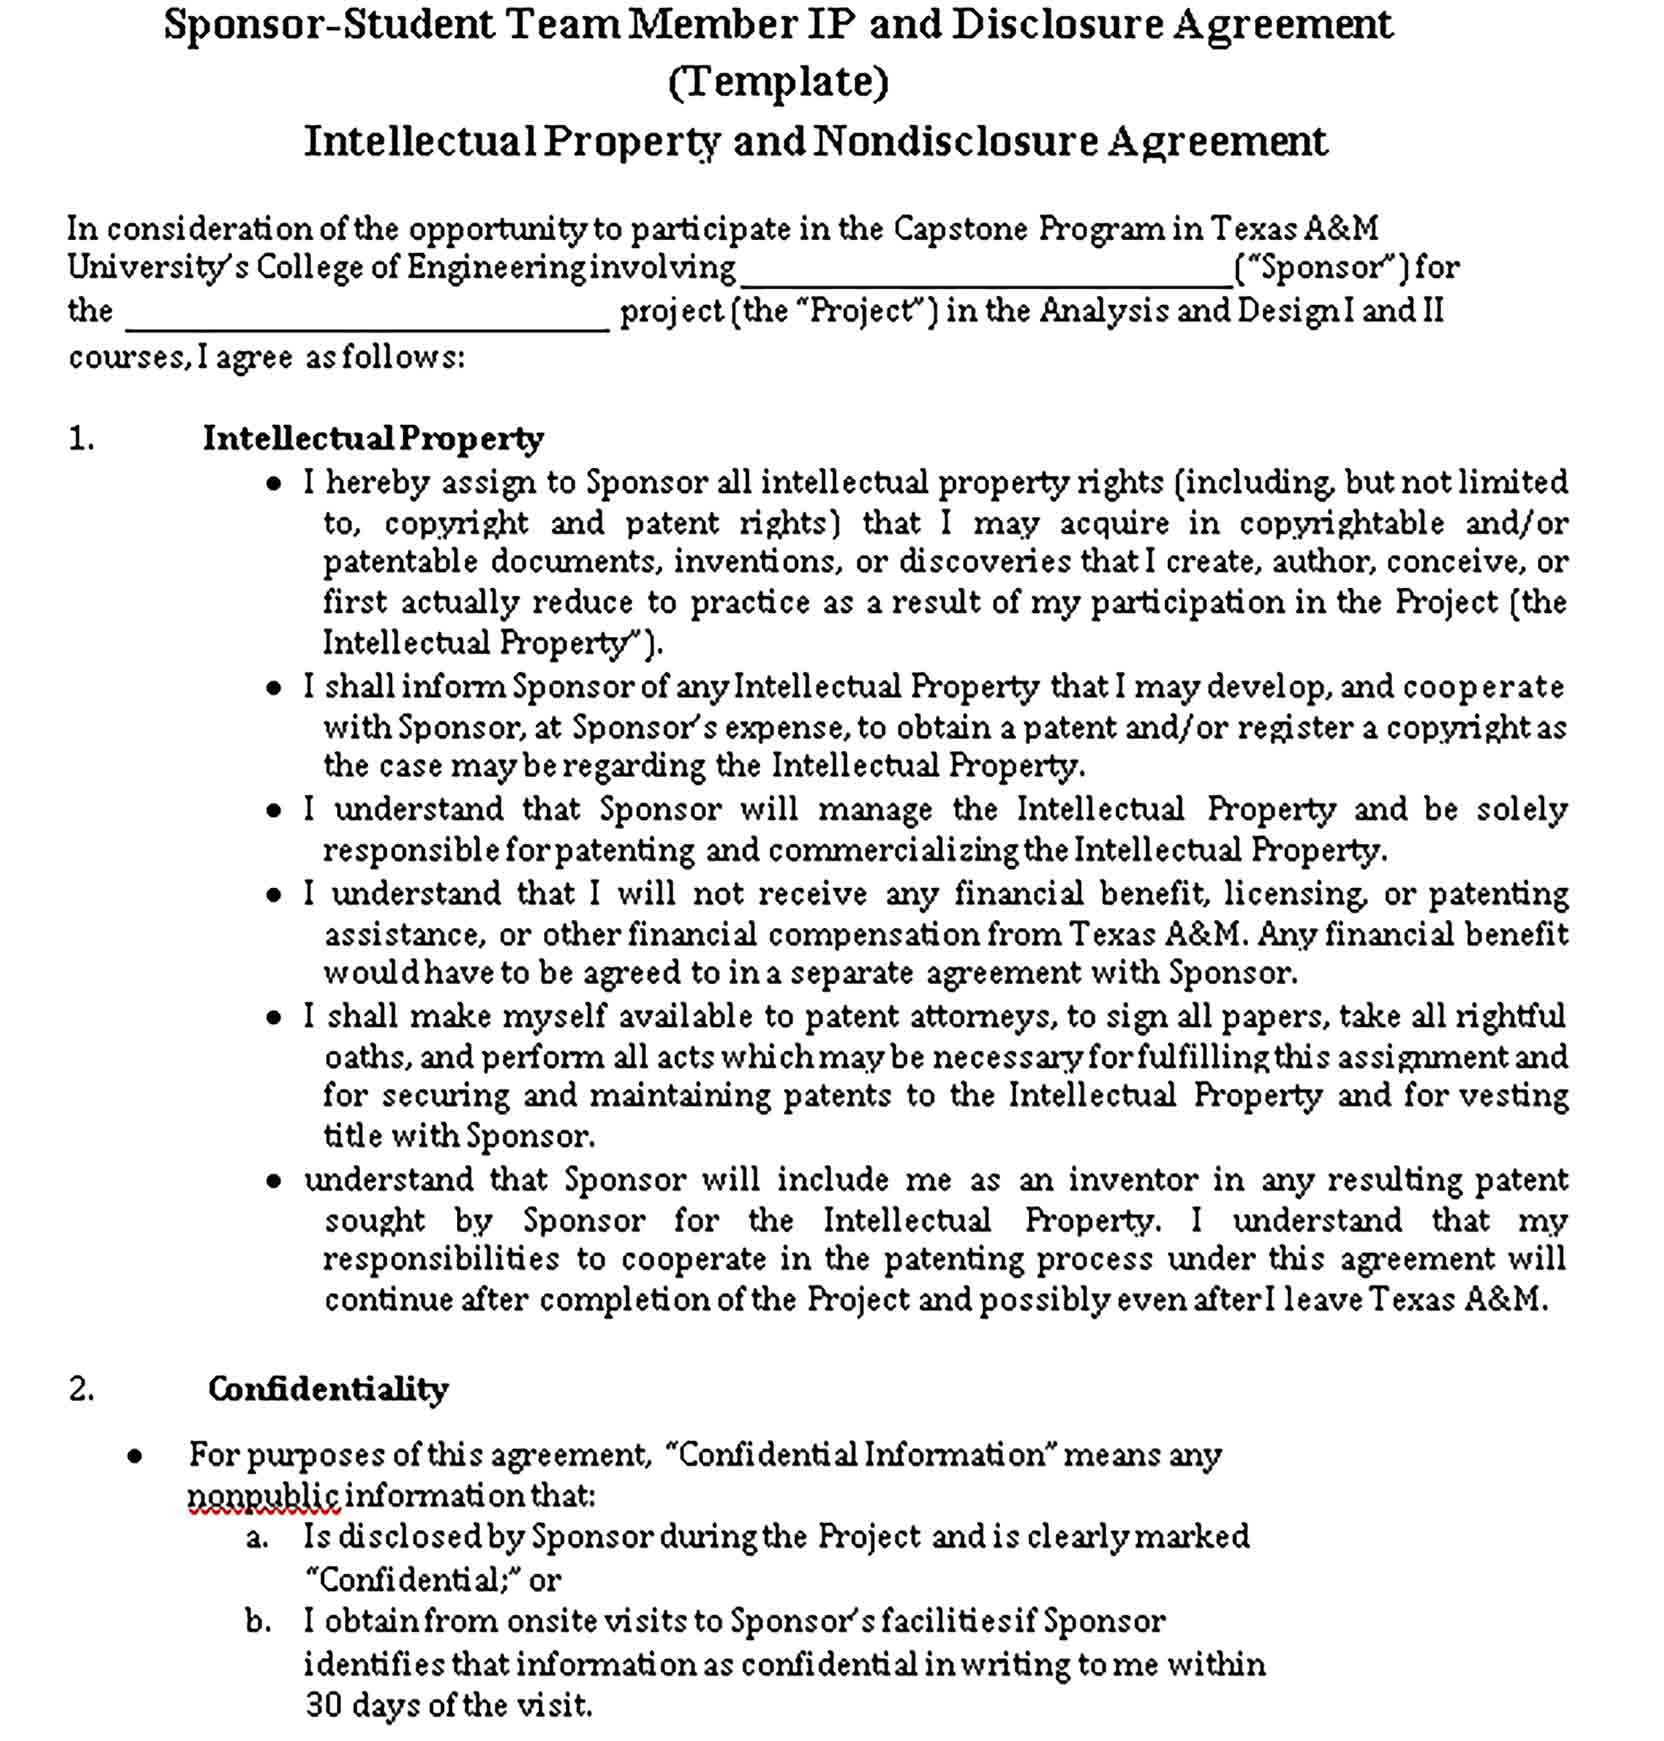 Templates Intellectual Property and Nondisclosure Agreement Sample